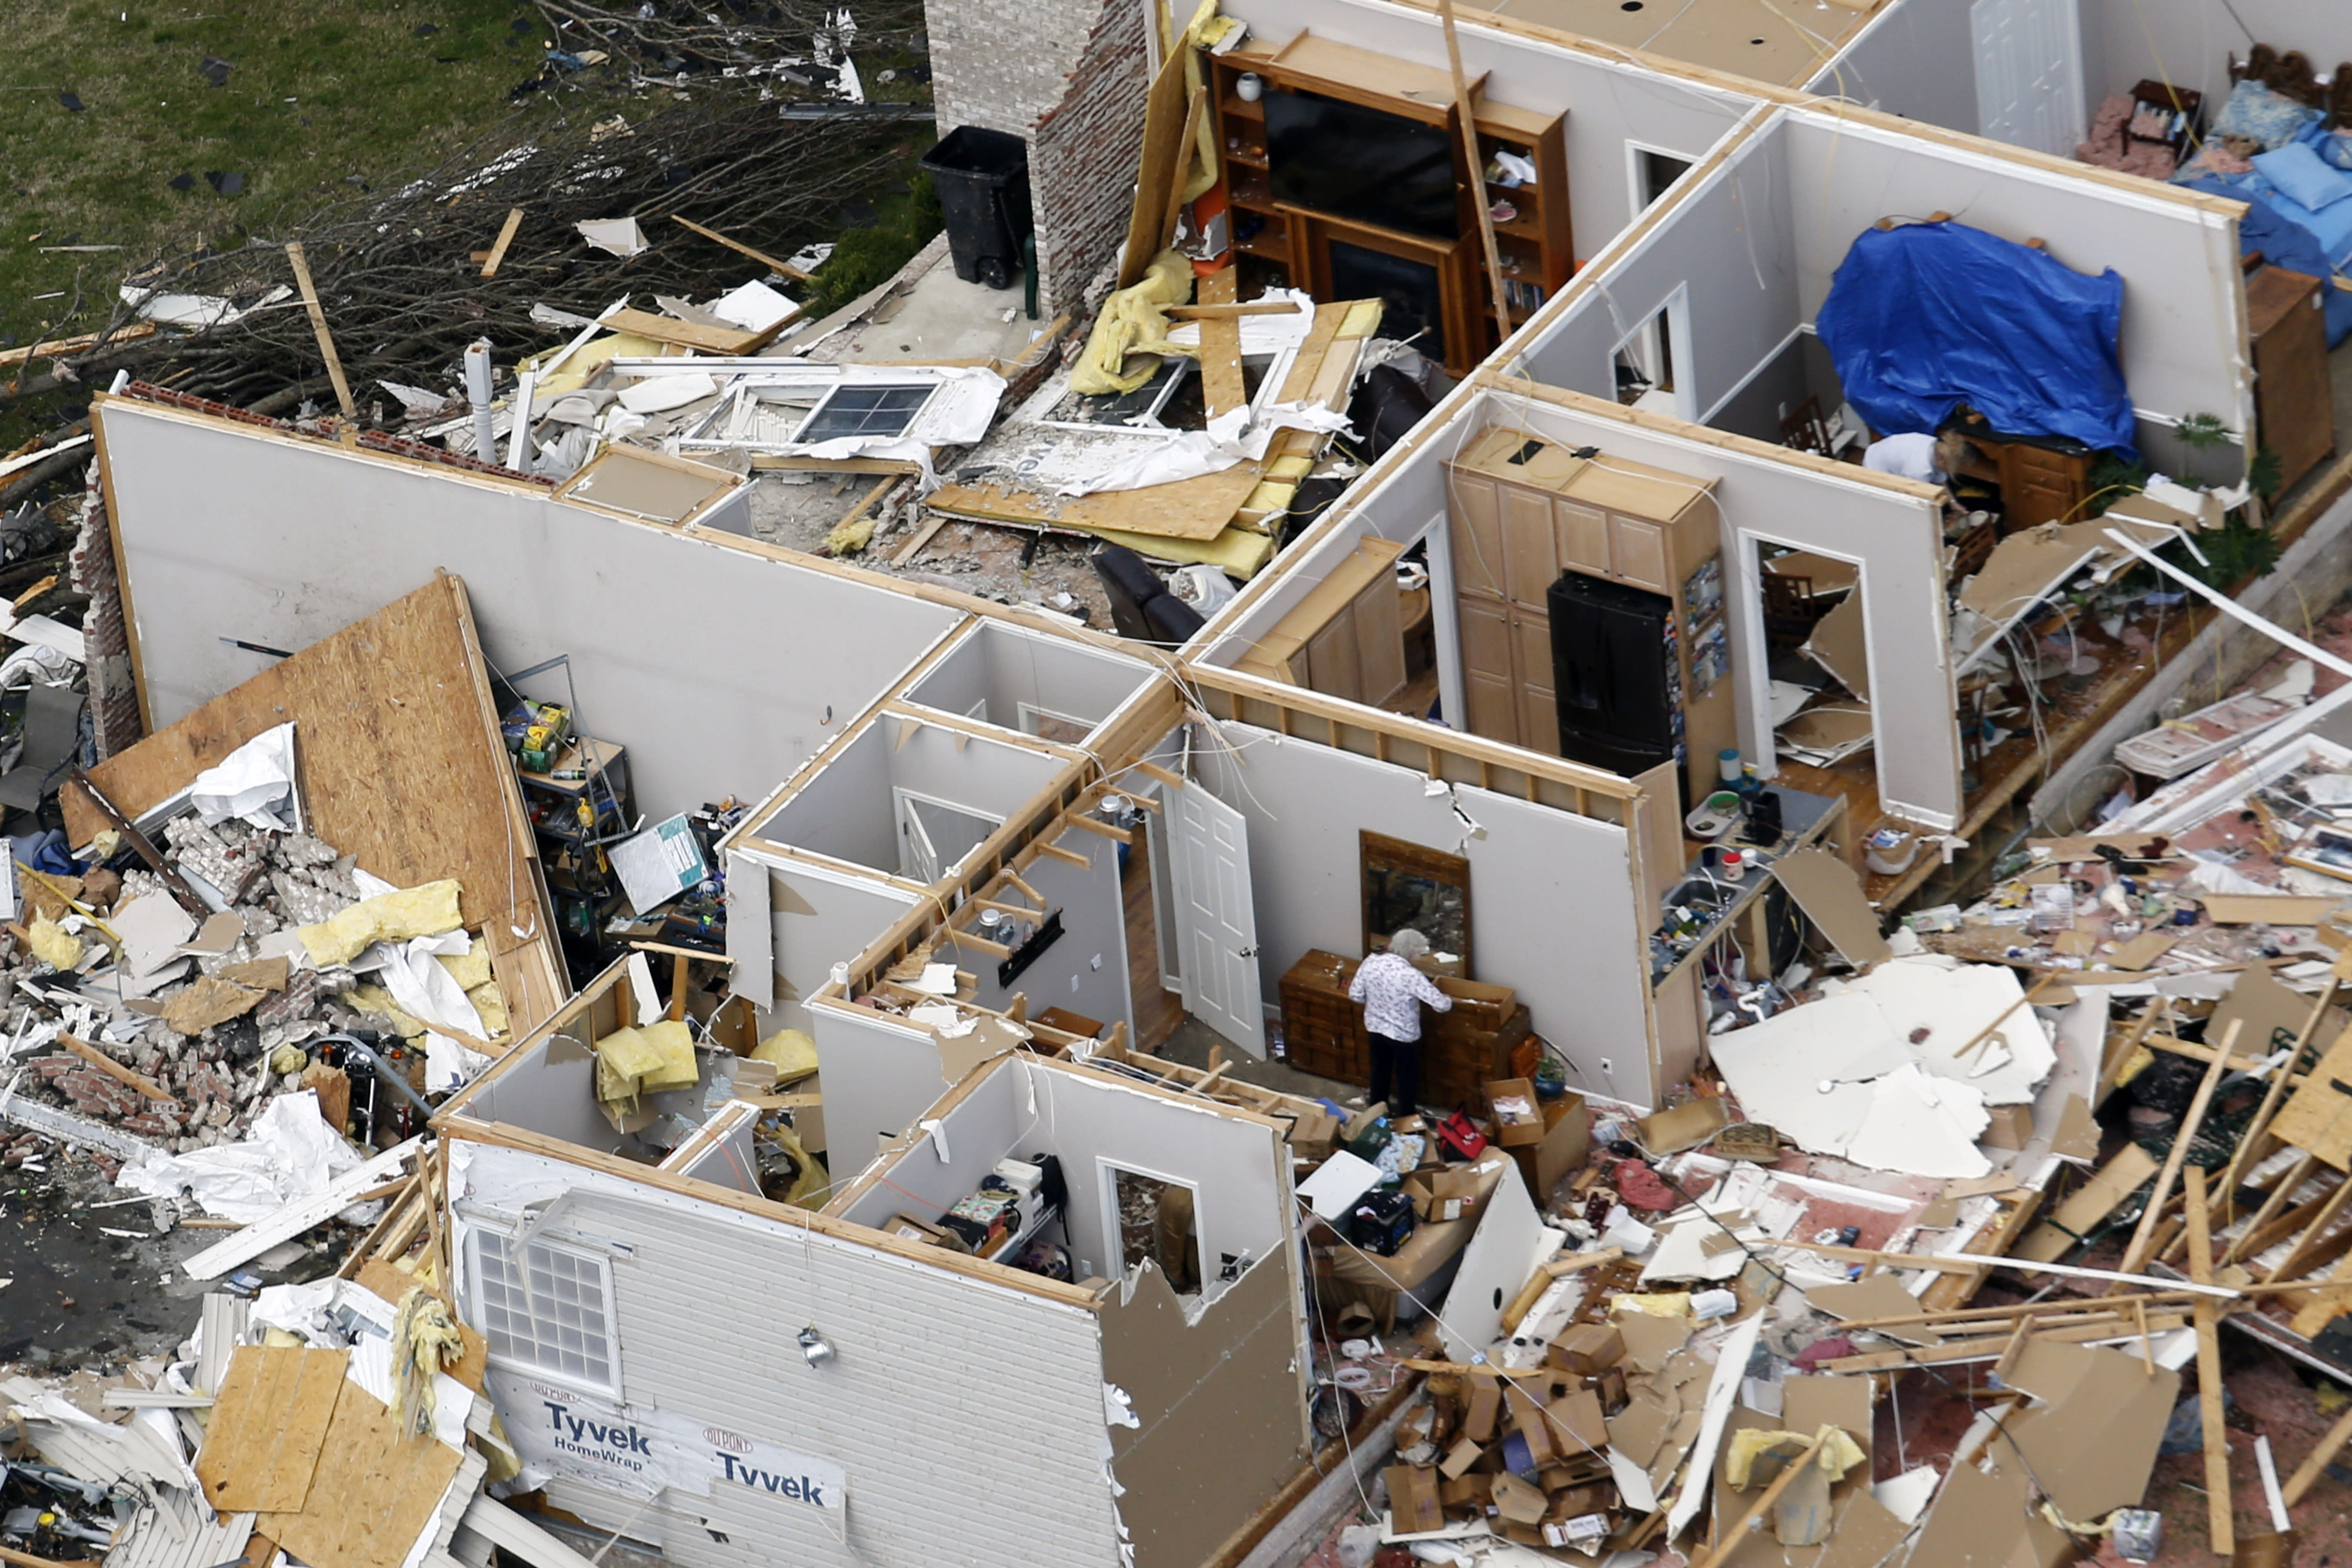 A woman salvages item from a destroyed home Tuesday, March 3, 2020, near Lebanon, Tenn. Tornadoes ripped across Tennessee early Tuesday, shredding more than 140 buildings and burying people in piles of rubble and wrecked basements. (AP Photo/Mark Humphrey)